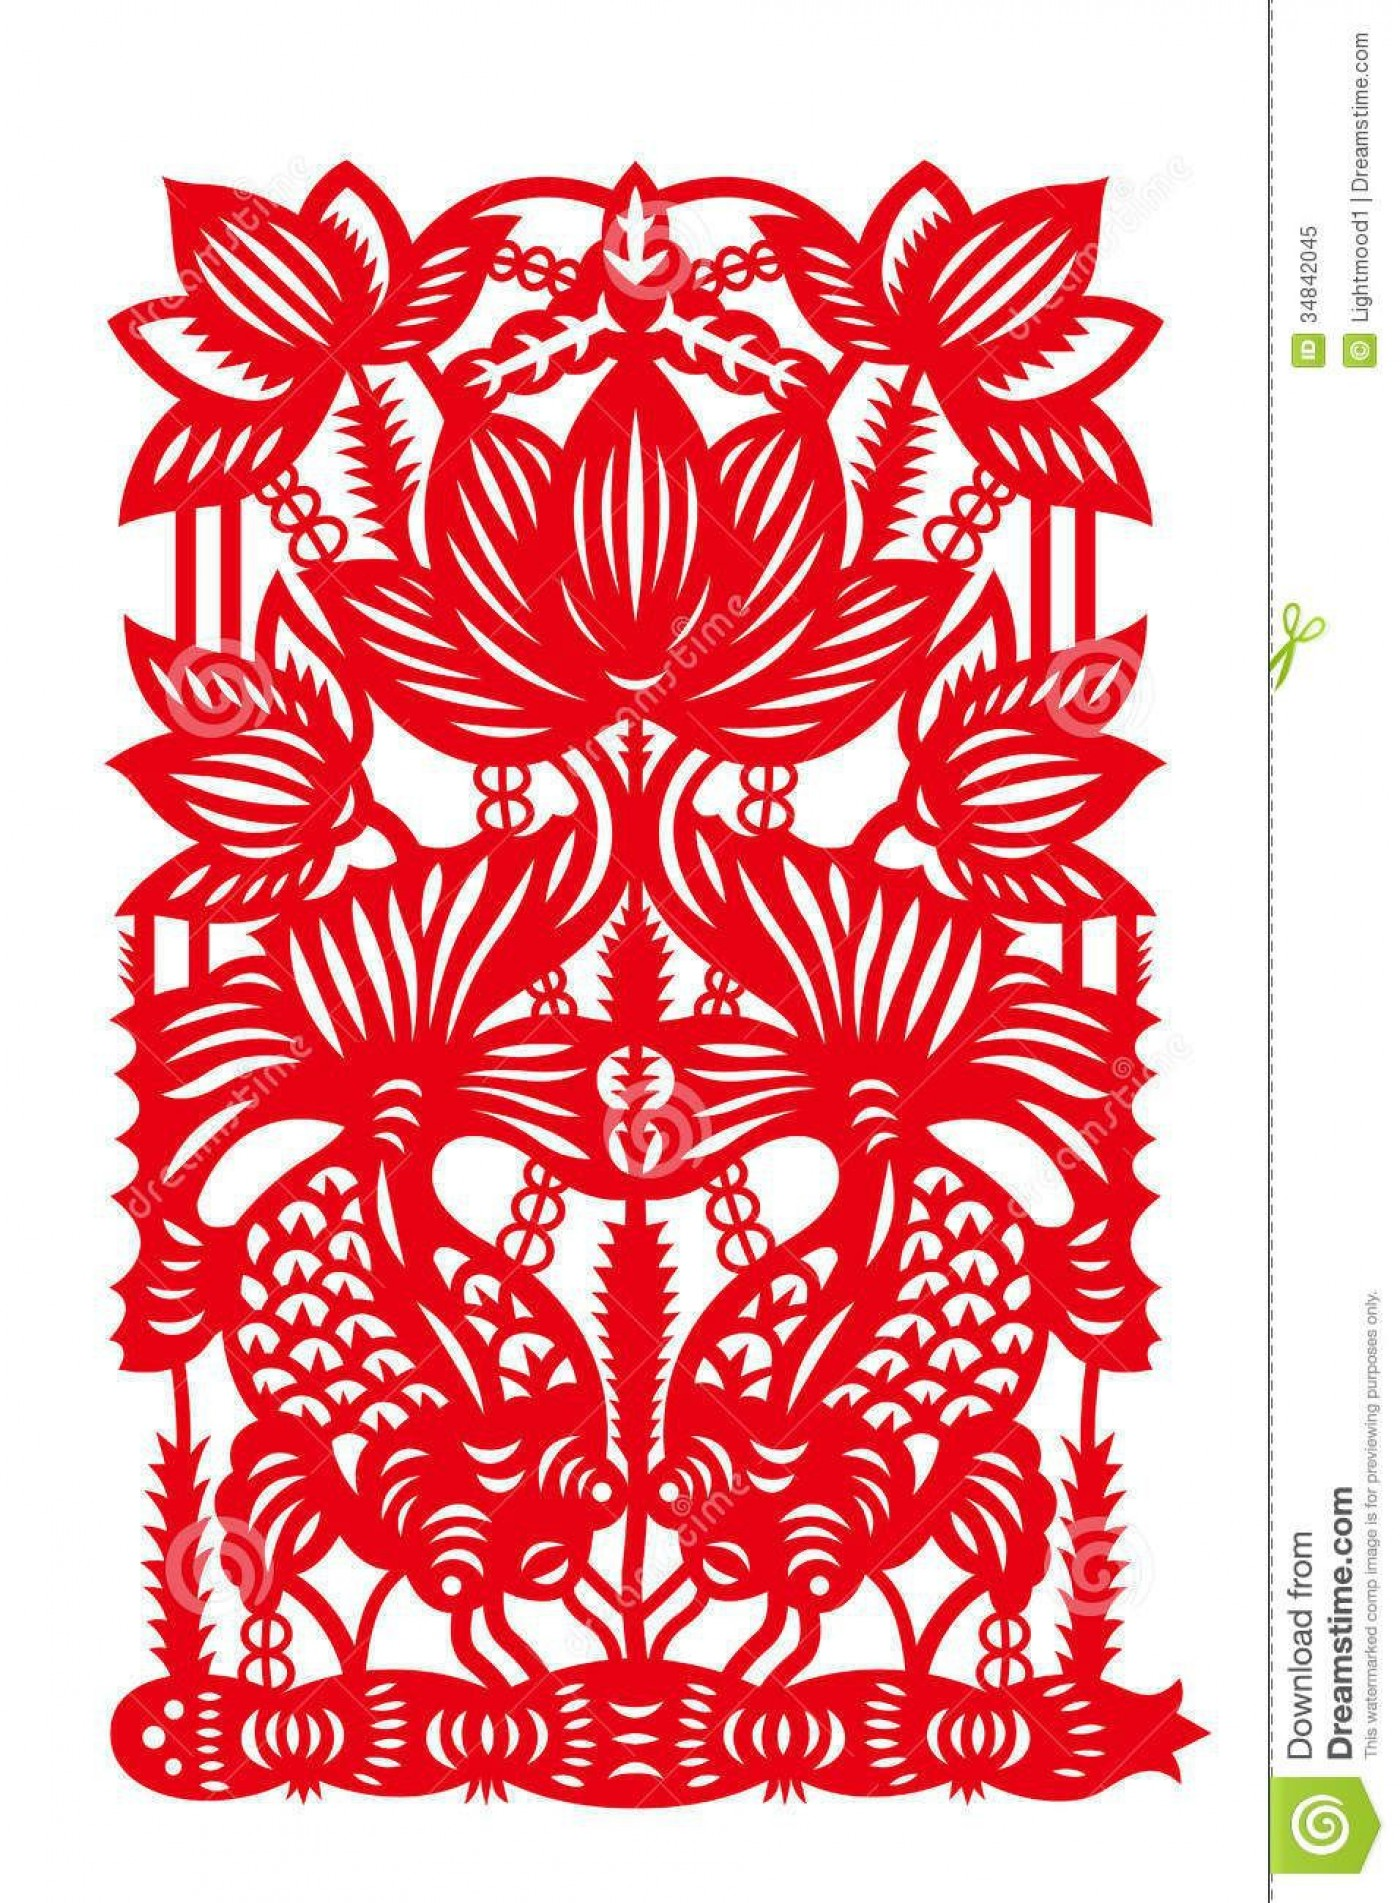 000 Excellent Chinese Paper Cut Template Idea 1400